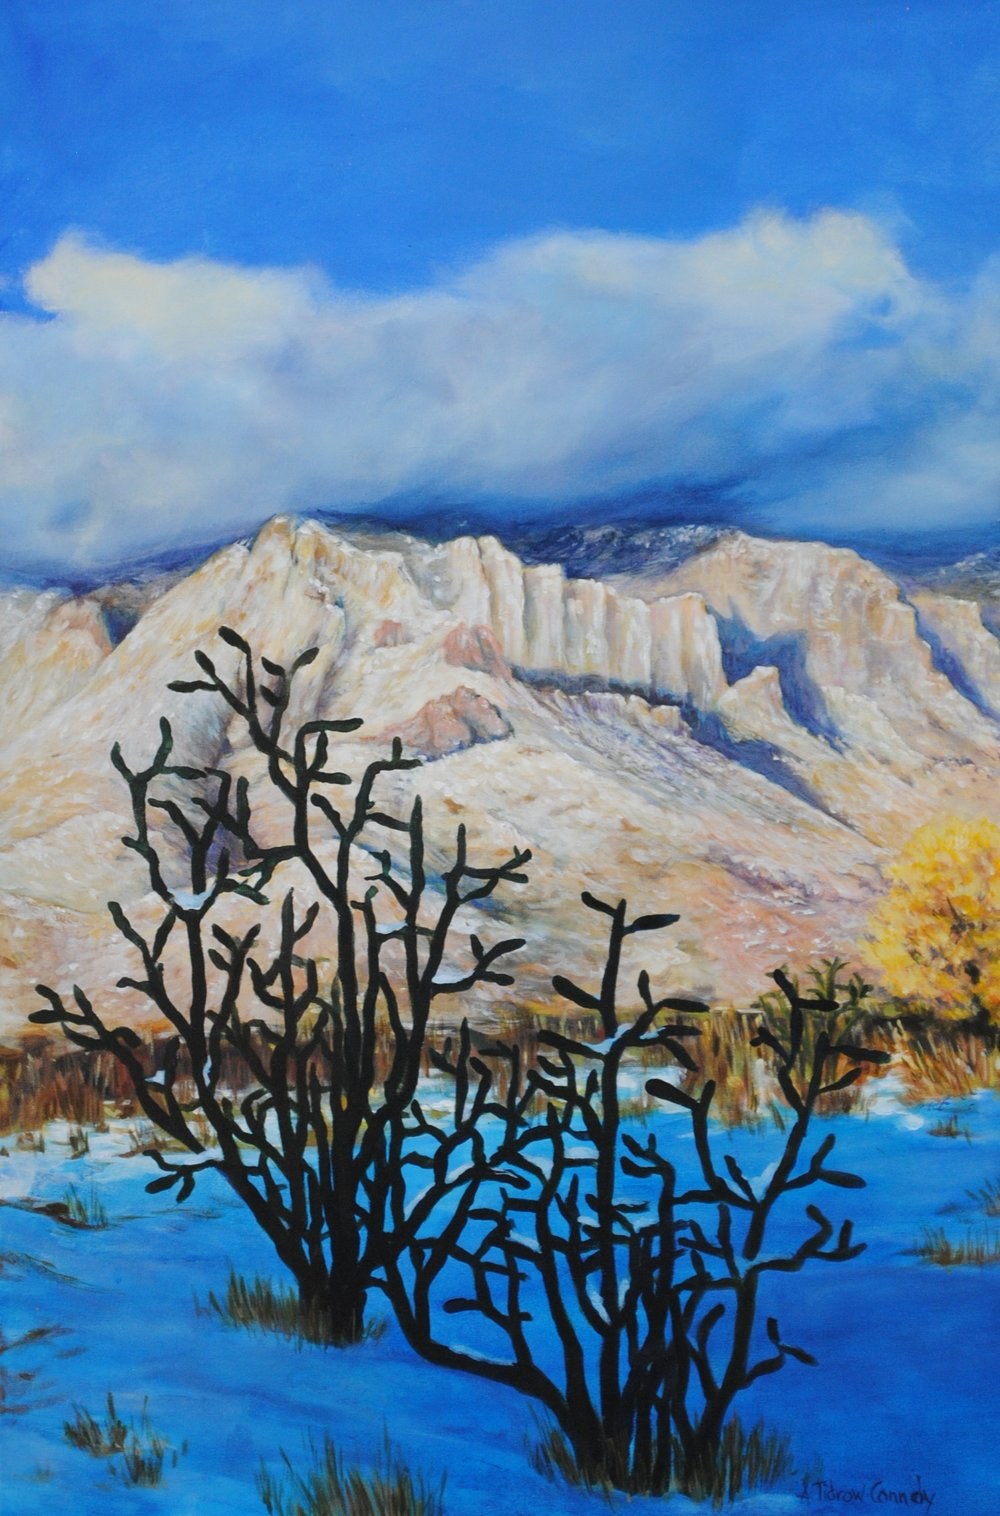 Sandia still on view - This Thursday and Friday are the last days to see the Sandia Mountain Art show at Tortuga Gallery.Hours are 1-5 both days.The